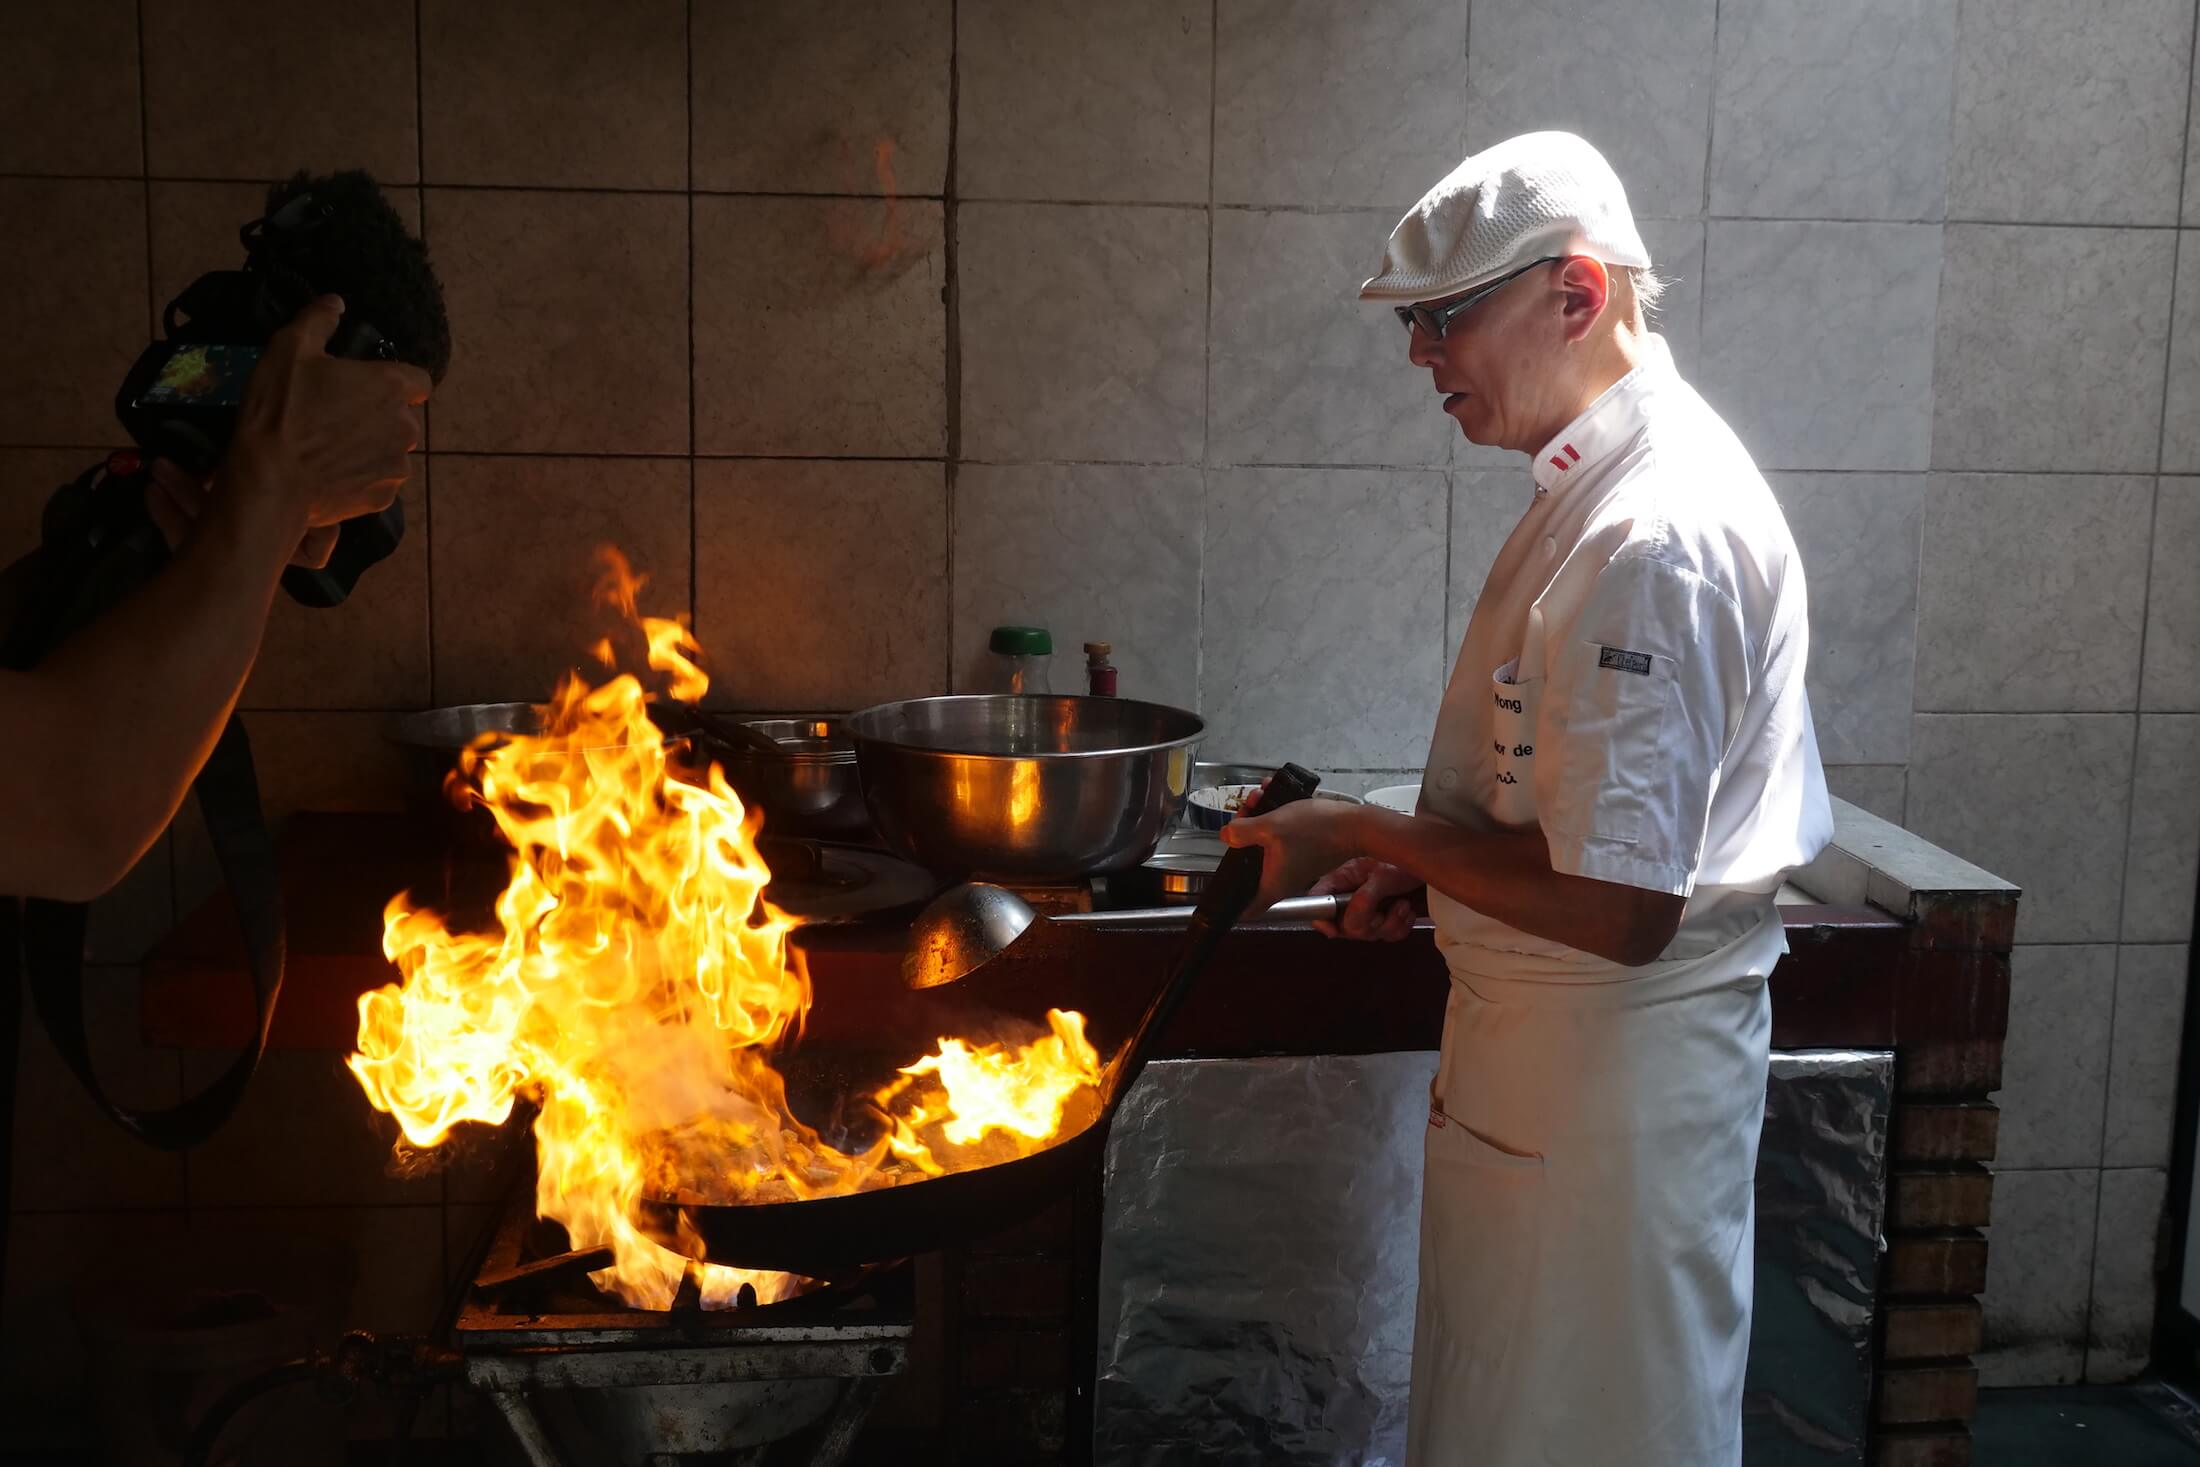 I wish I could play with fire during my own dinners the way that Chef Wong does with his